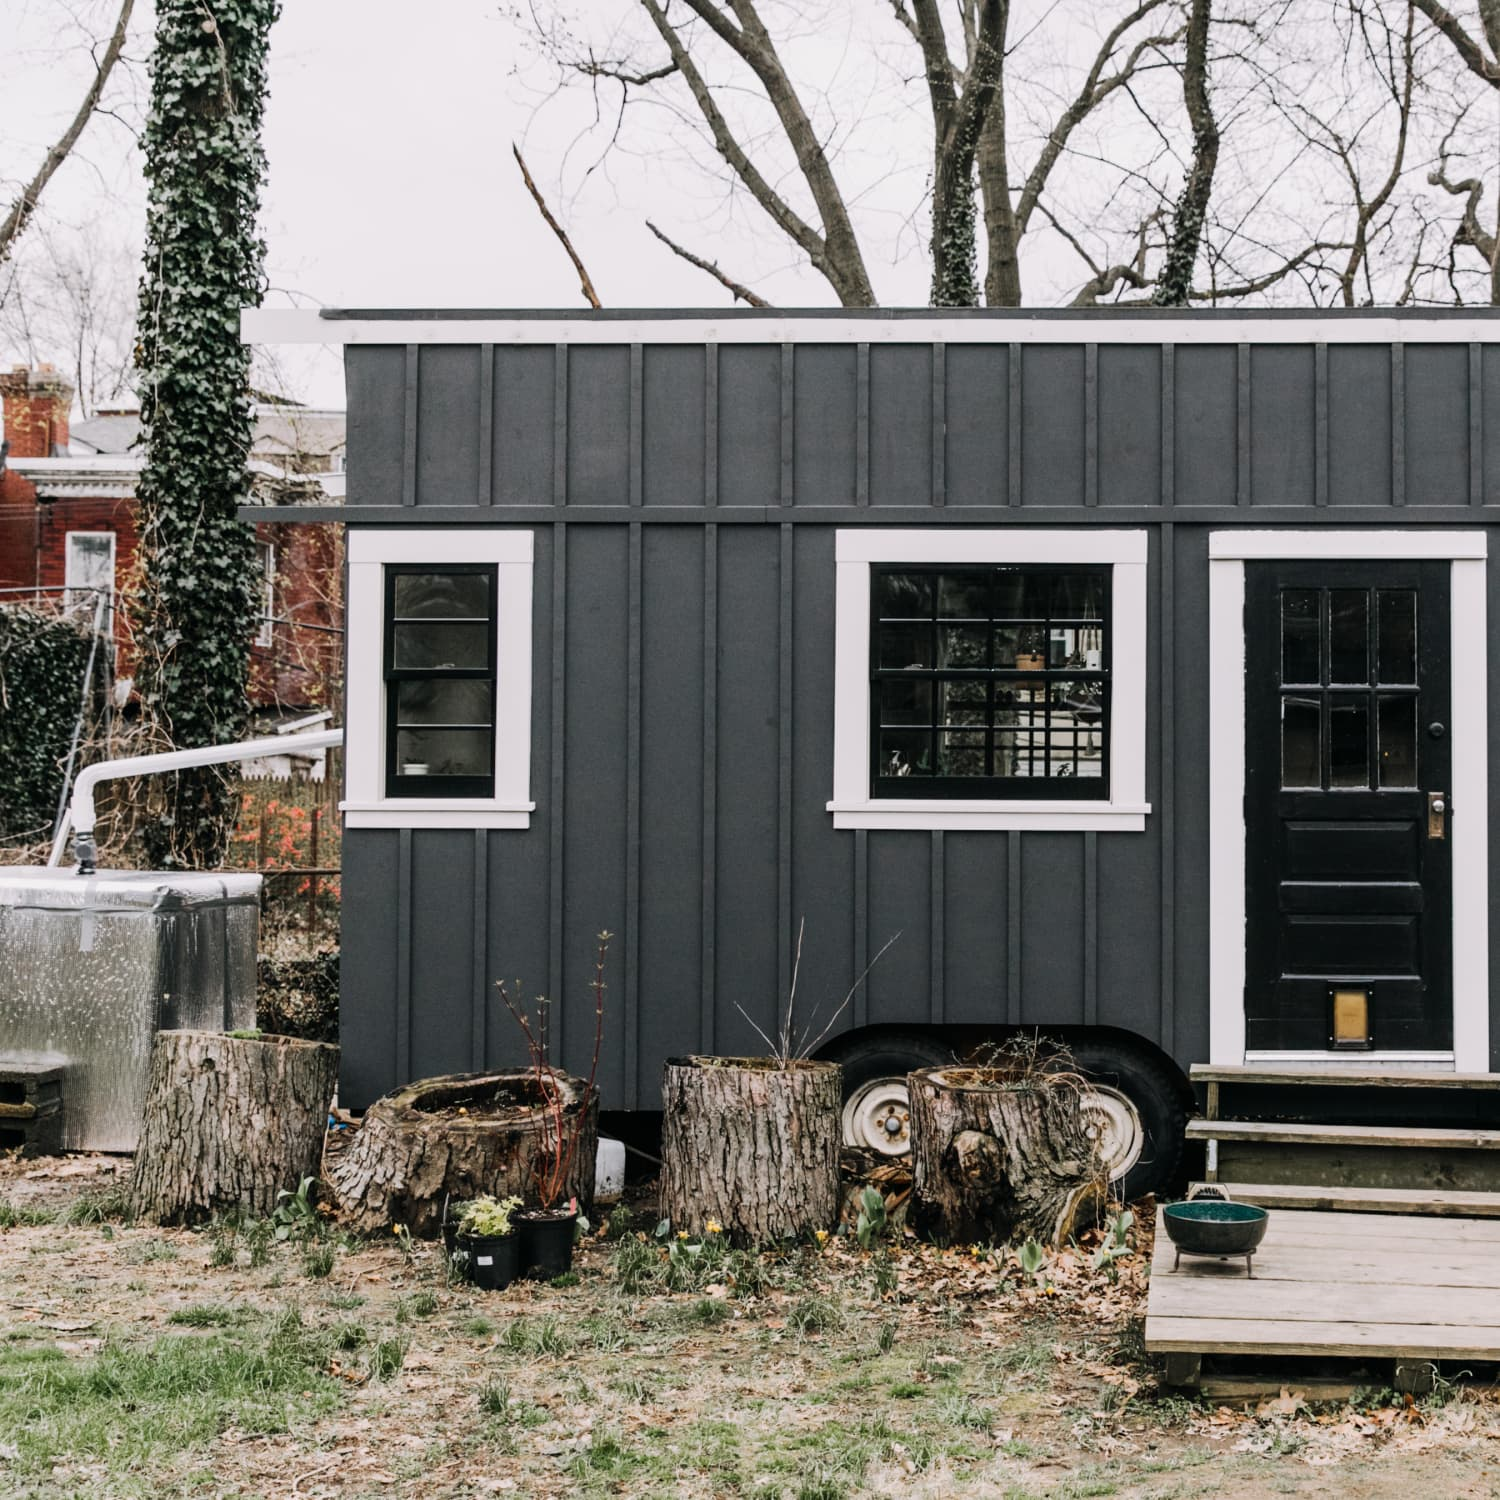 5 Best Tiny House Community Locations | Apartment Therapy